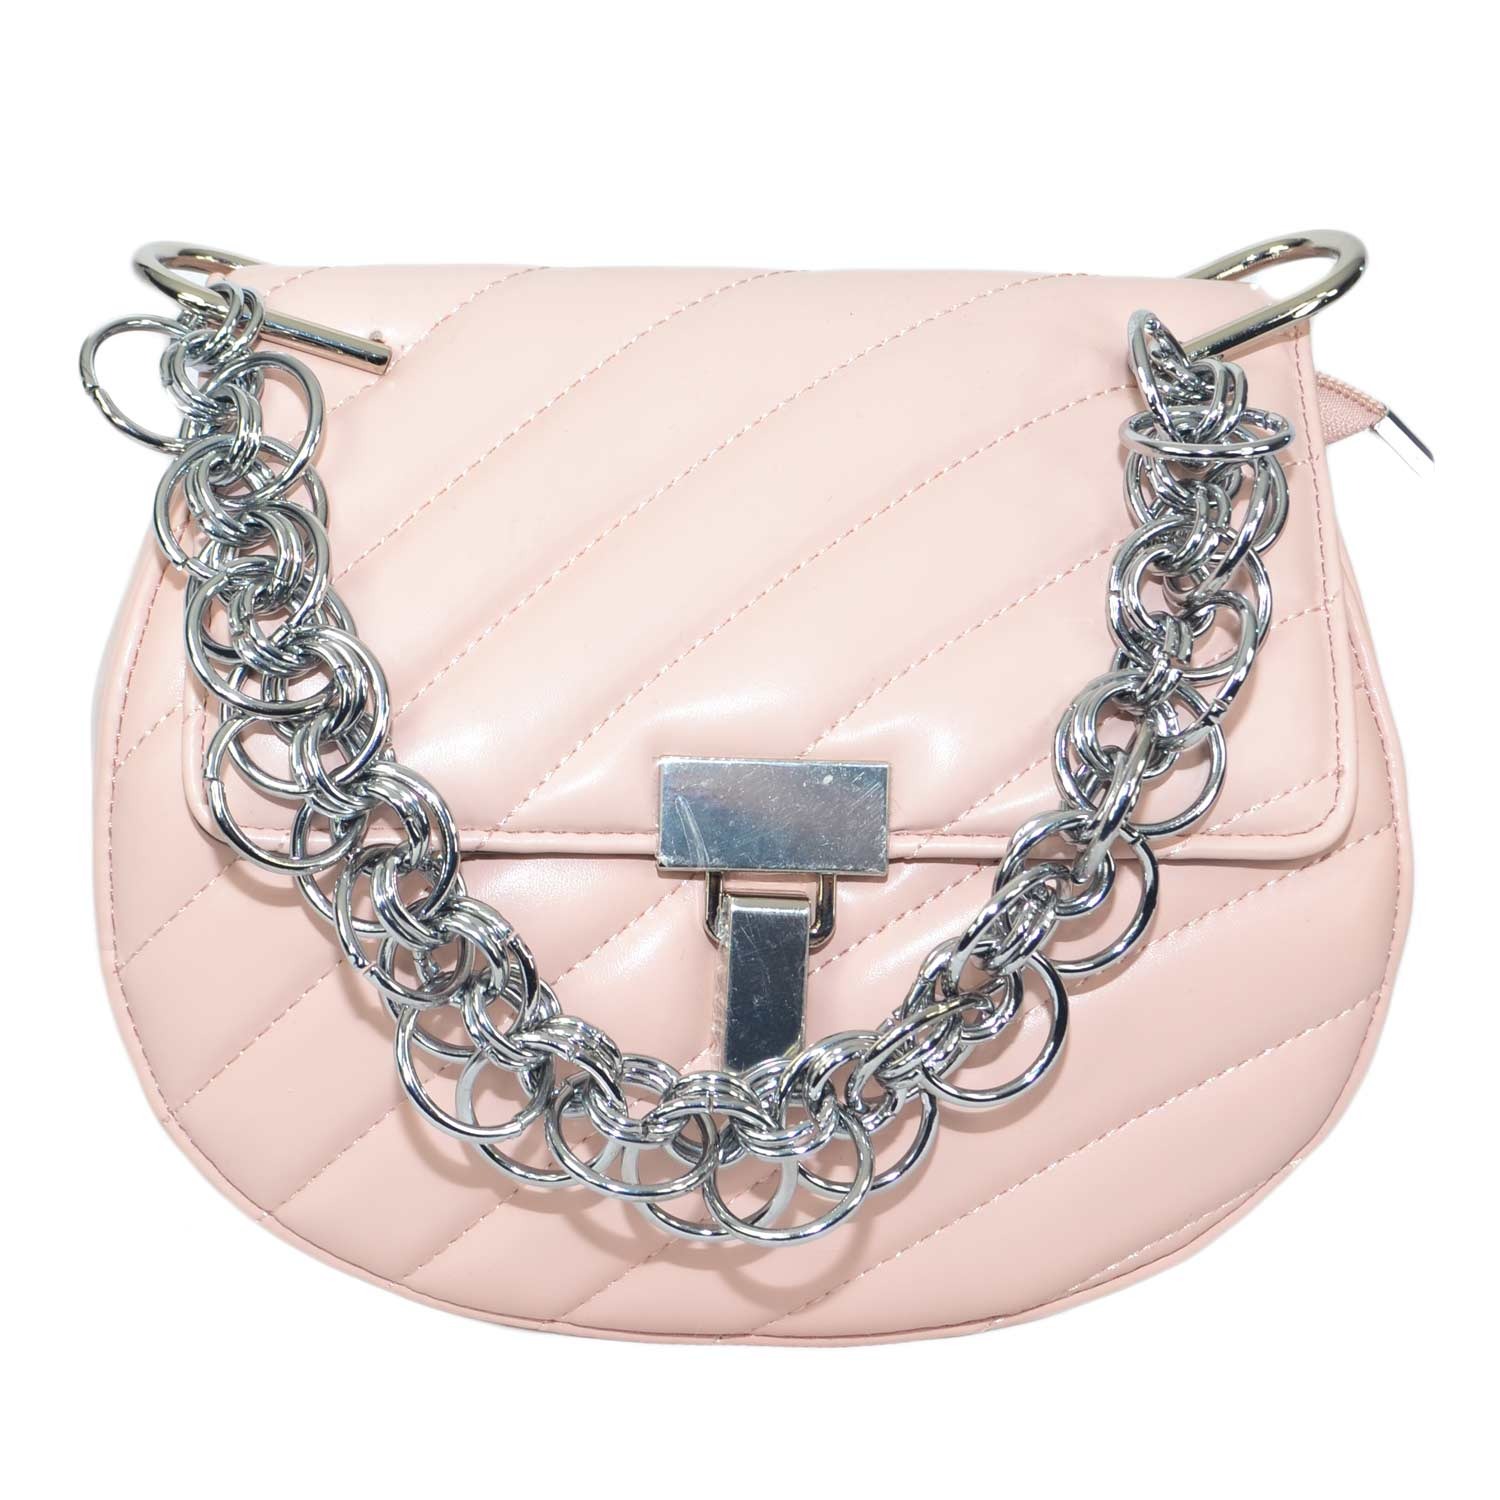 Borsa donna rosa con catena moda glamour made in italy.